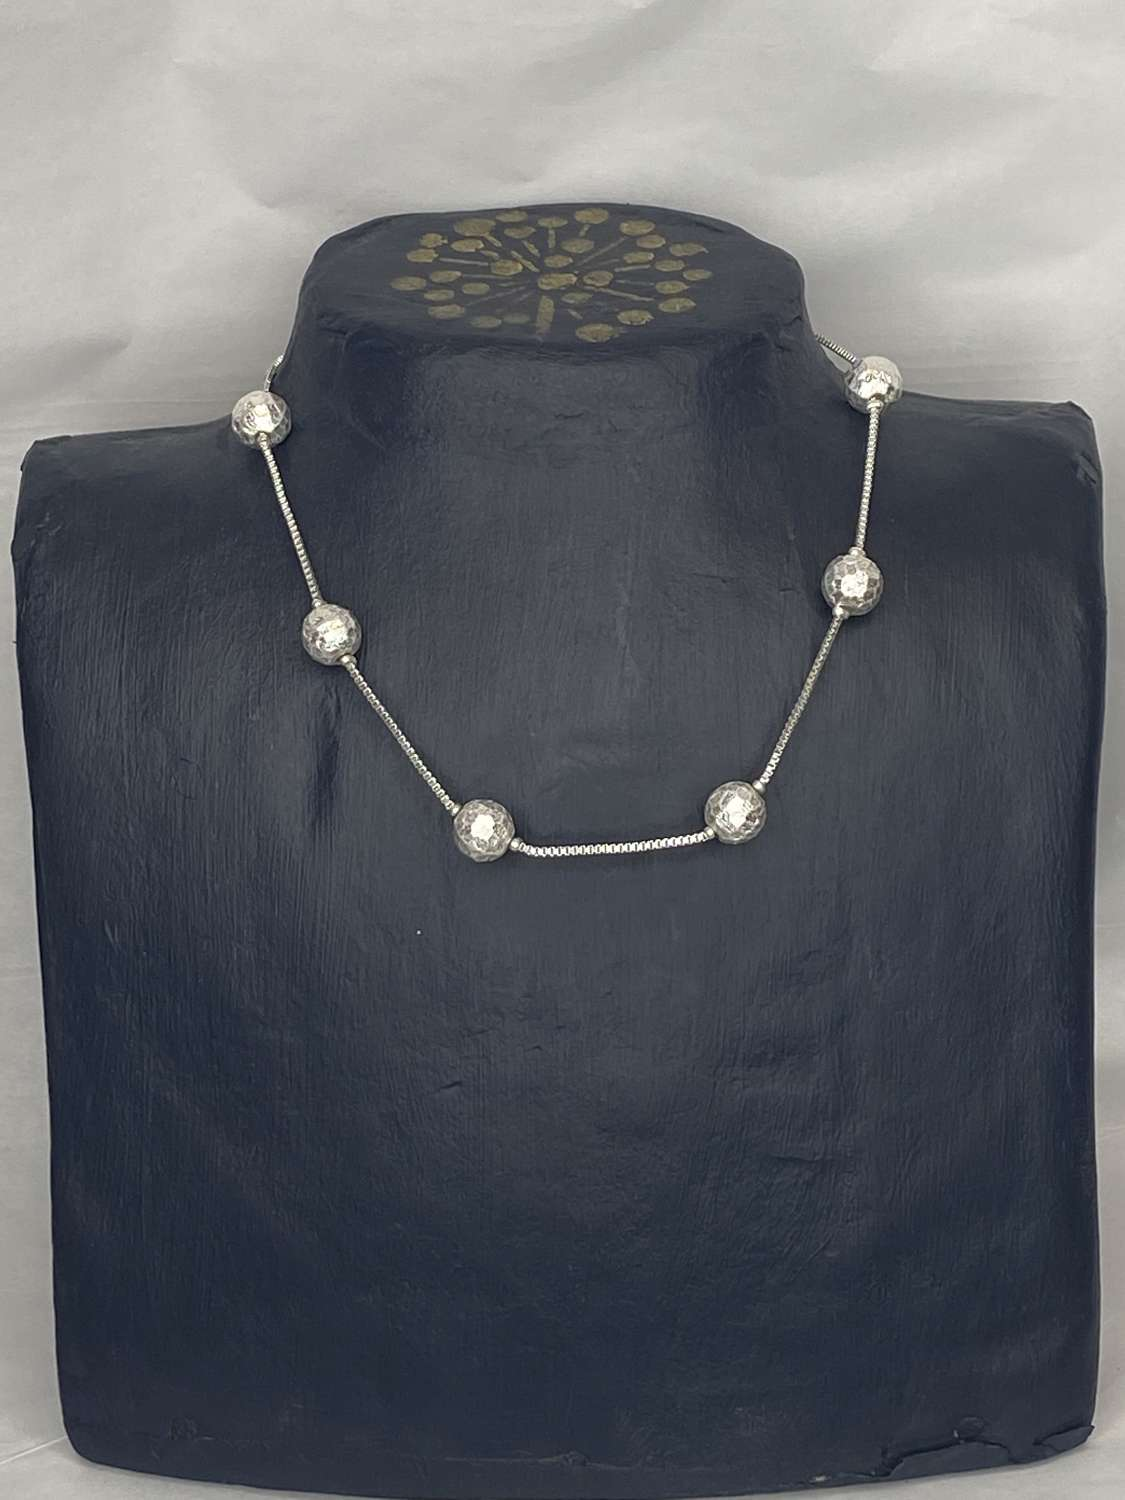 Envy silver hammered ball choker necklace